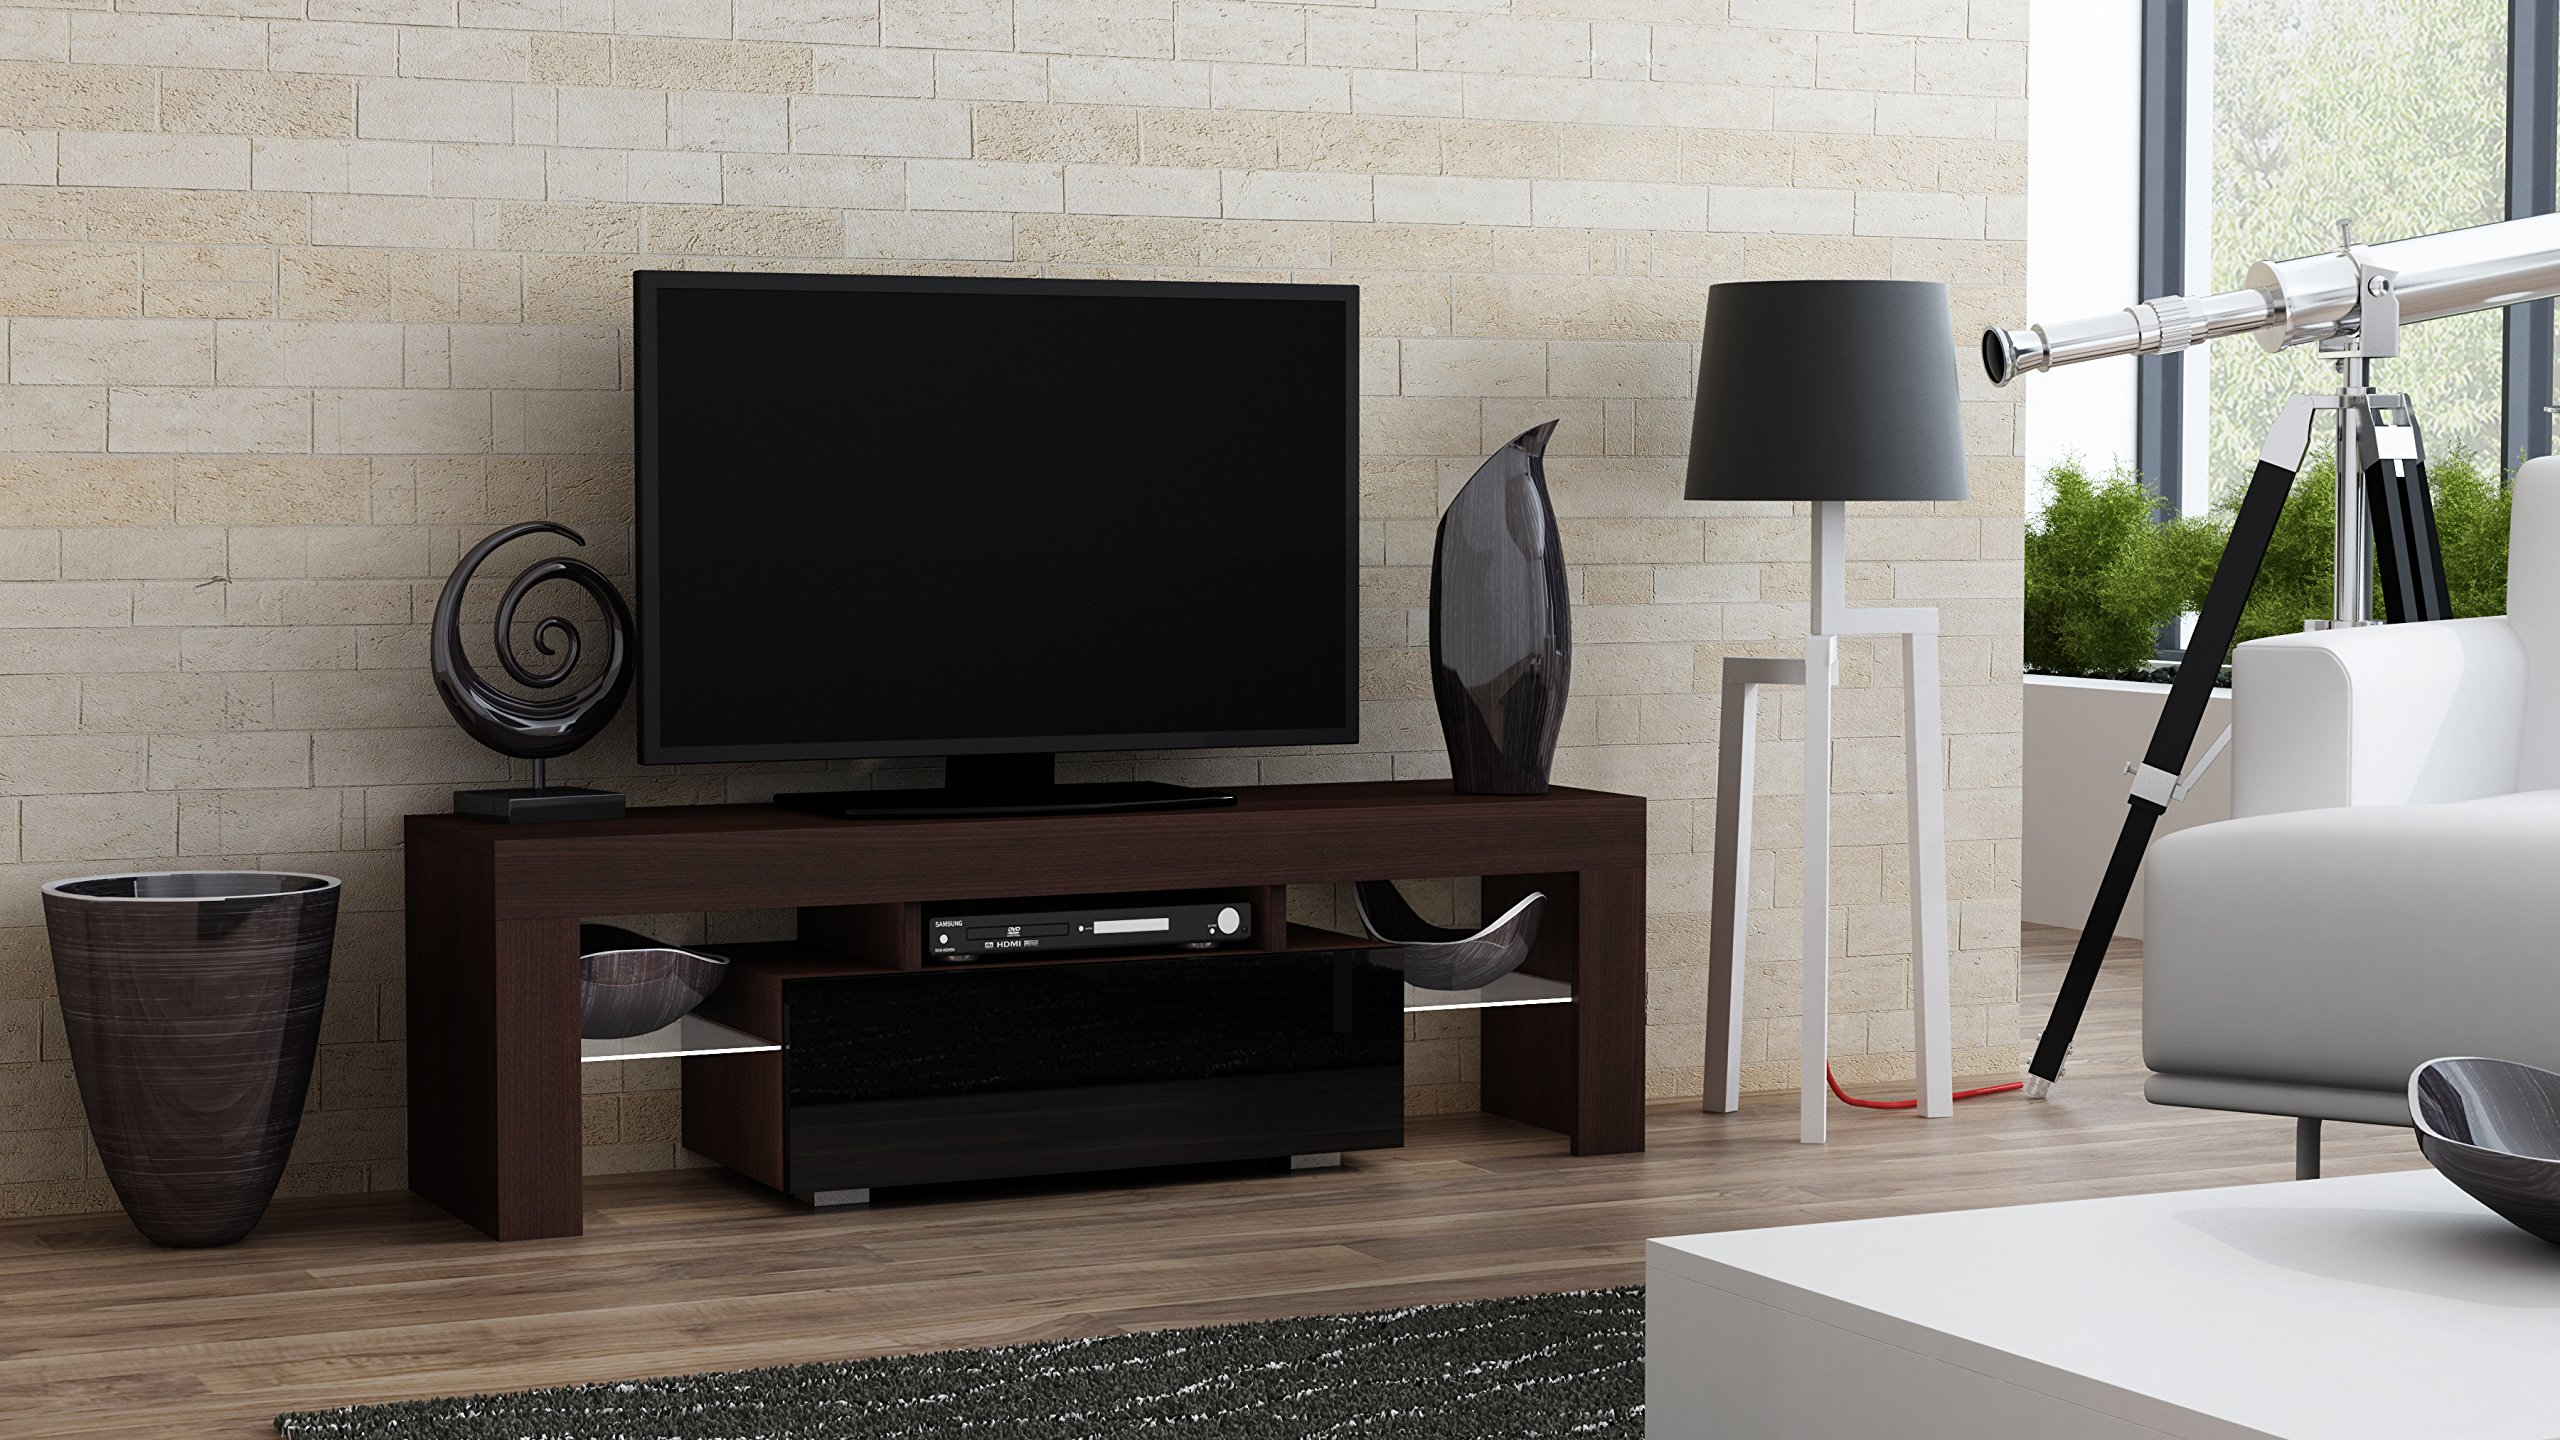 TV Stand MILANO 130 / Modern LED TV Cabinet / Living Room Furniture / Tv Console fit for up to 55'' flat TV screens / Capacity Tv Console for Modern Living Room (Wenge & Black) by Concept Muebles (Image #1)